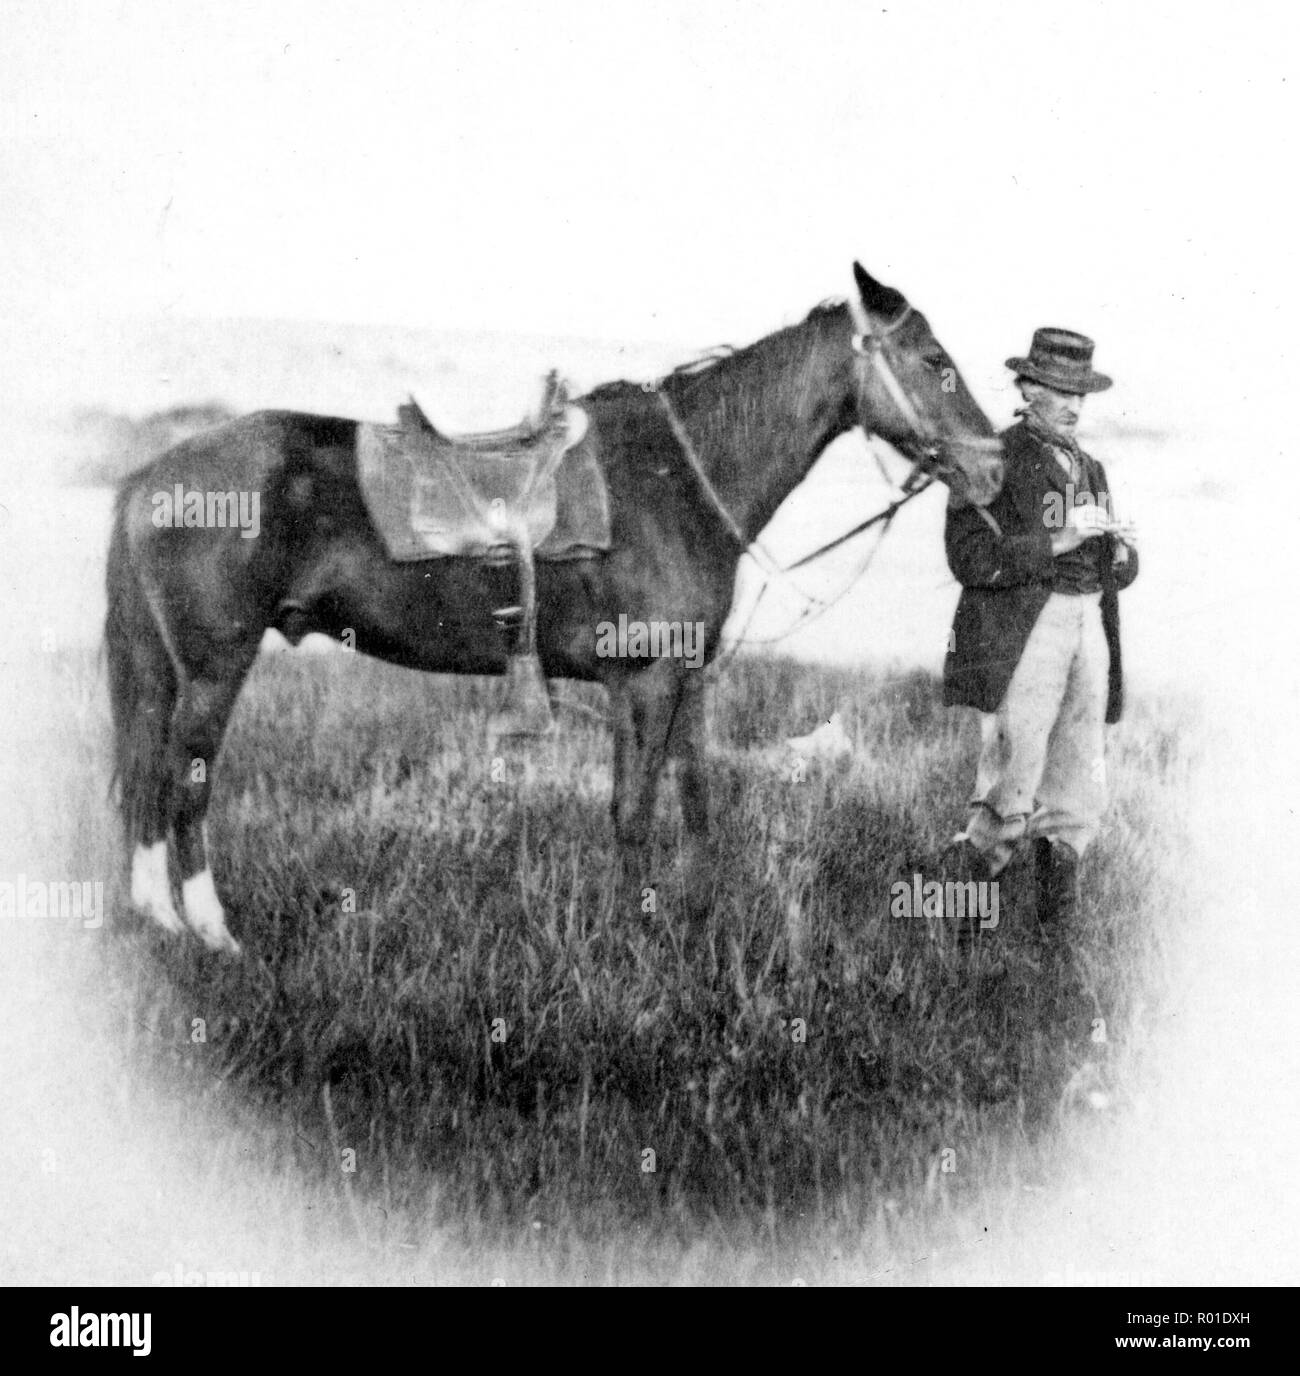 Cyrus Thomas (1825 – 1910) American ethnologist and entomologist prominent in the late 19th century and noted for his studies of the natural history of the American West. - Stock Image